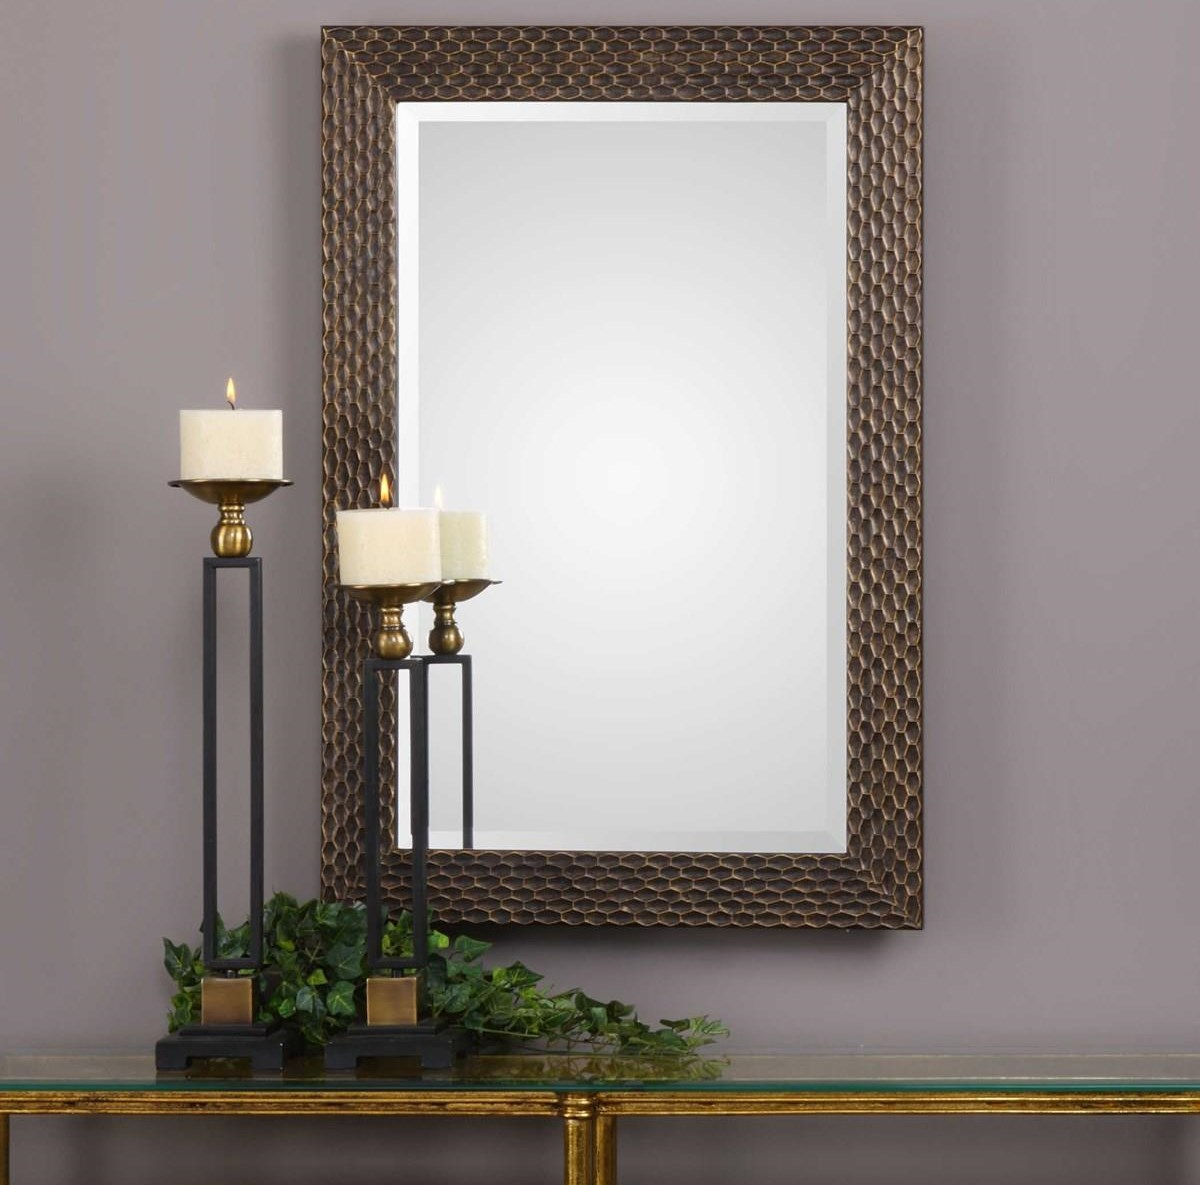 Mirrors SCARLETT WALL MIRROR by Unique at Walker's Furniture